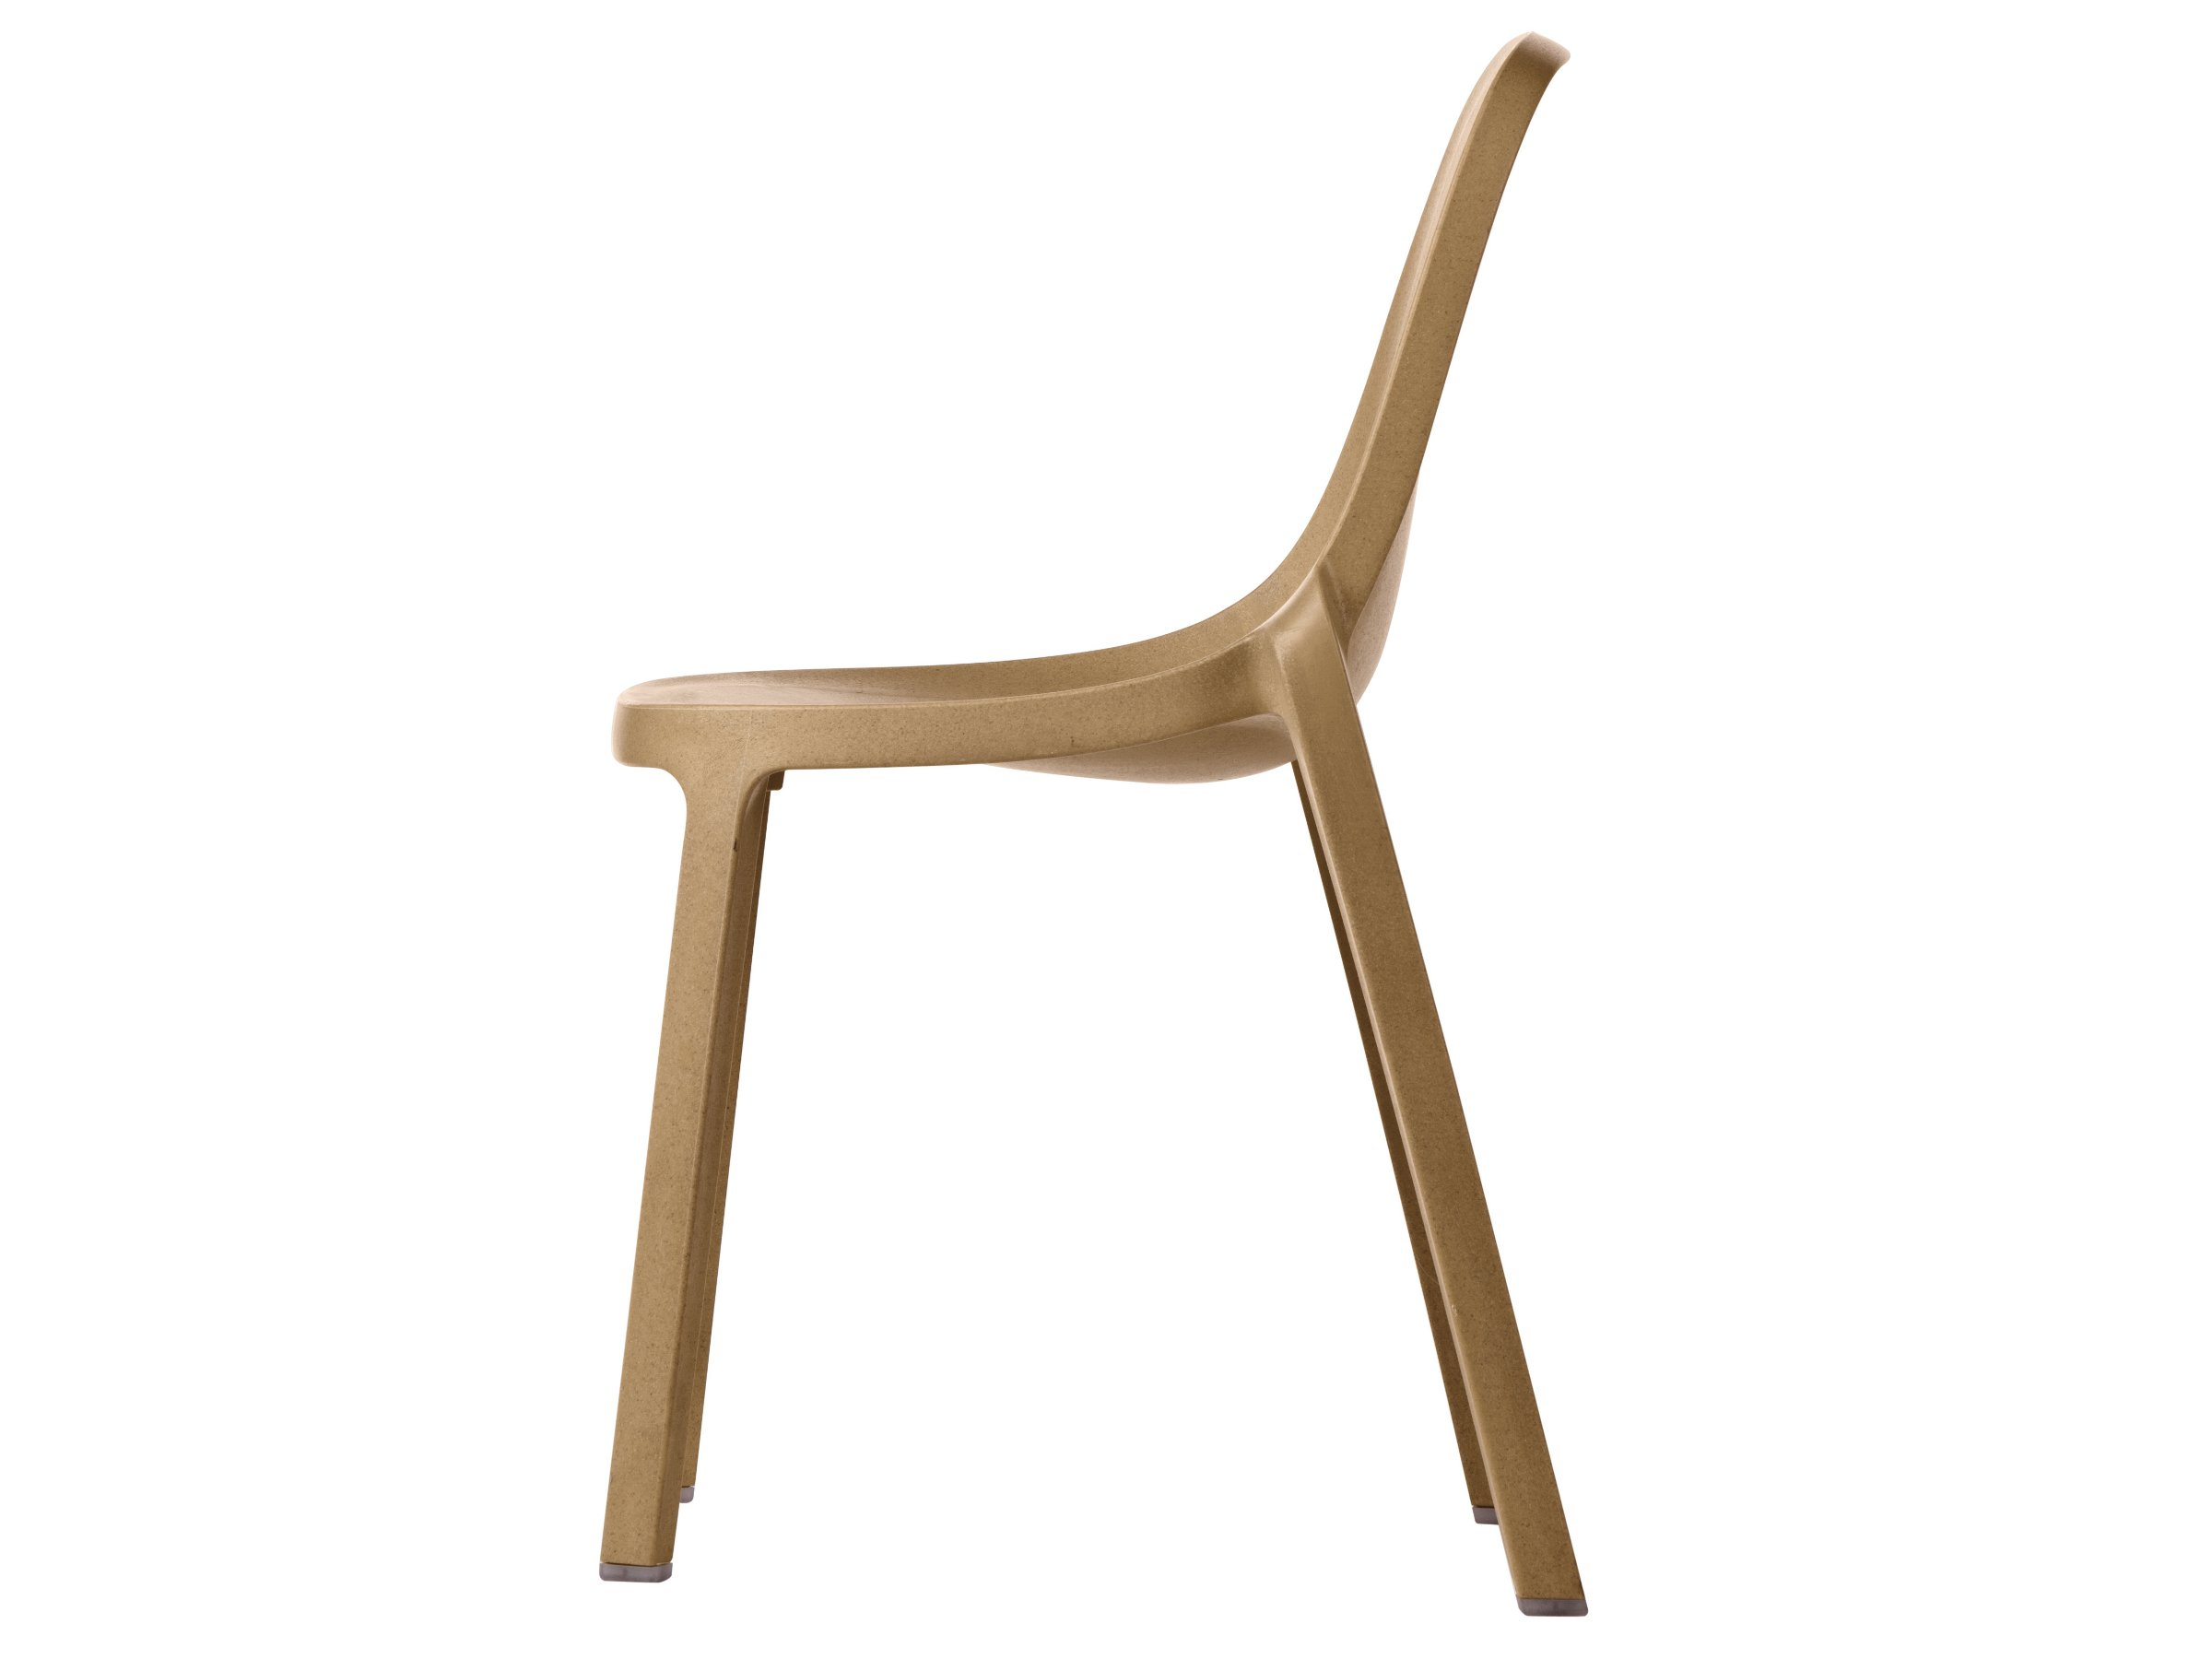 Broom chair for emeco in 2012 to showcase the properties of a new wood - Broom Chair For Emeco In 2012 To Showcase The Properties Of A New Wood 20